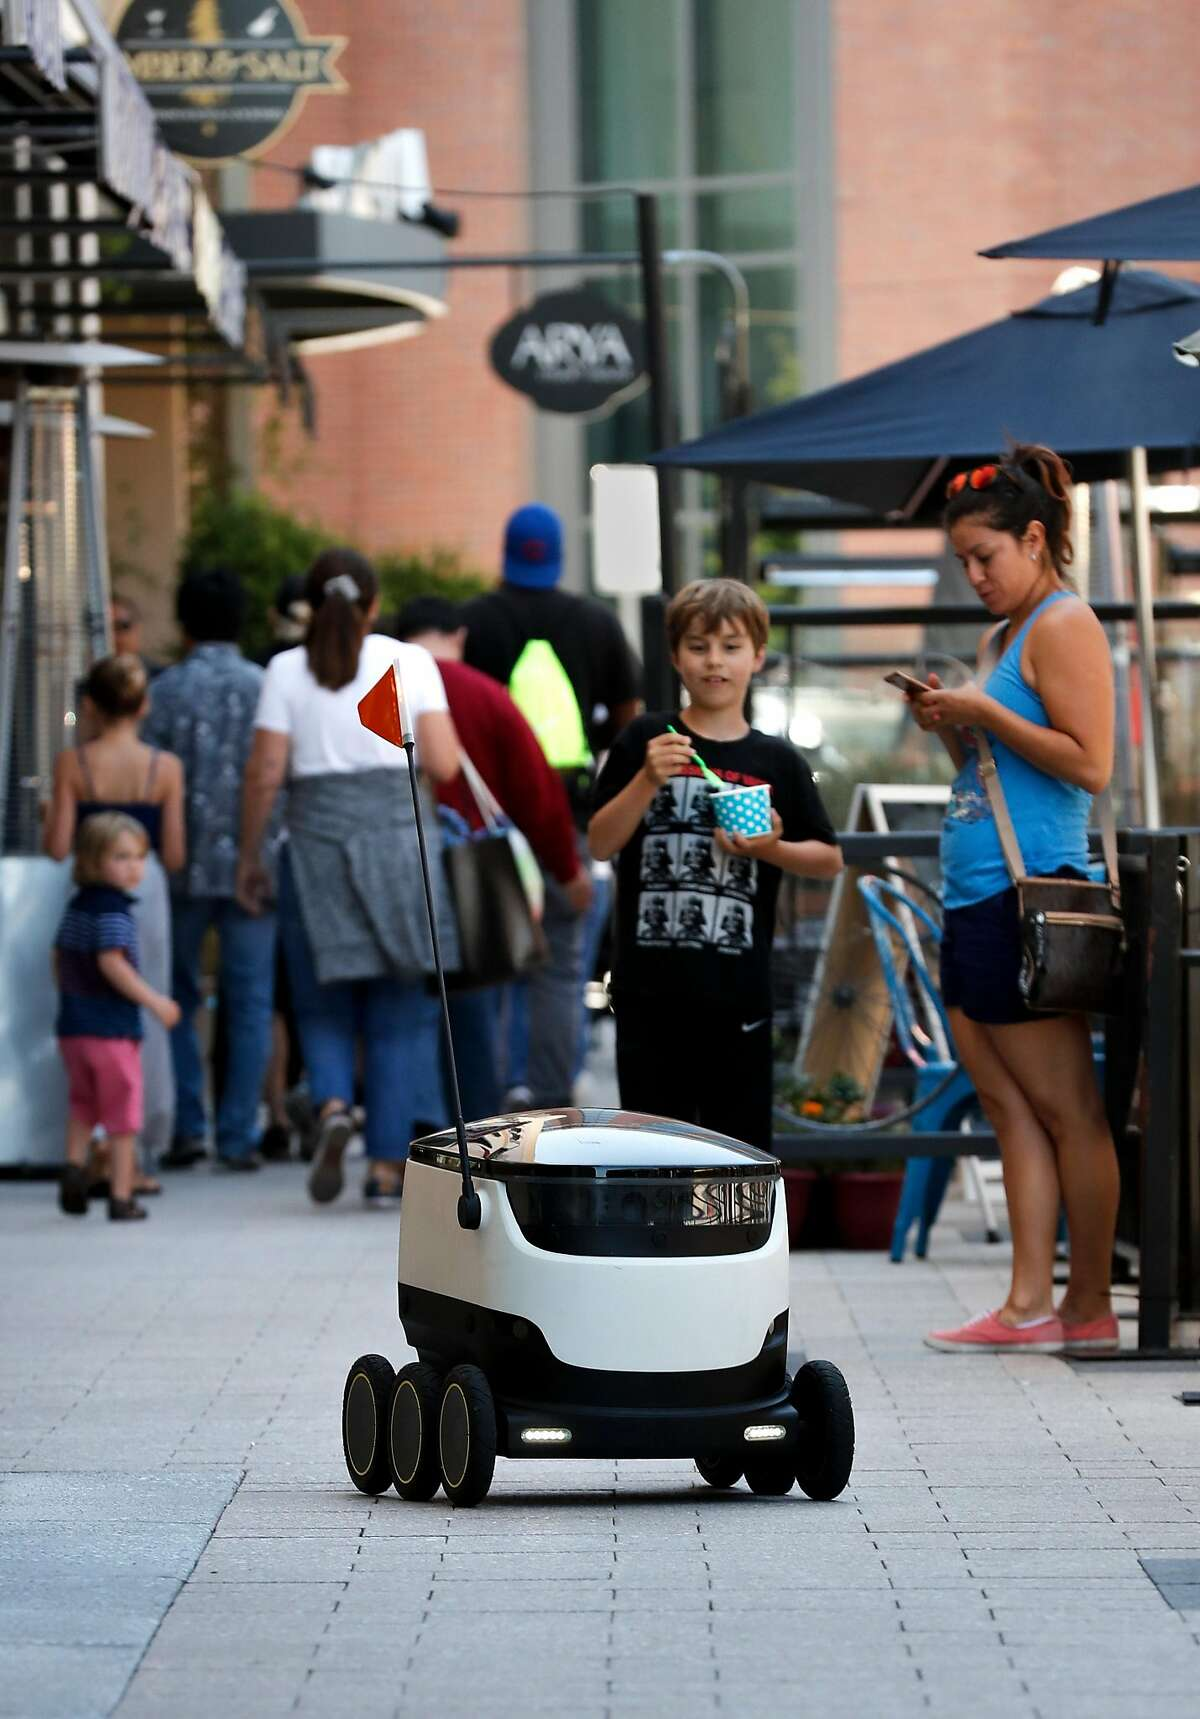 One of the robots operated by Starship Technologies navigates through downtown Redwood City, Ca. during a delivery on Tuesday July 18, 2017.